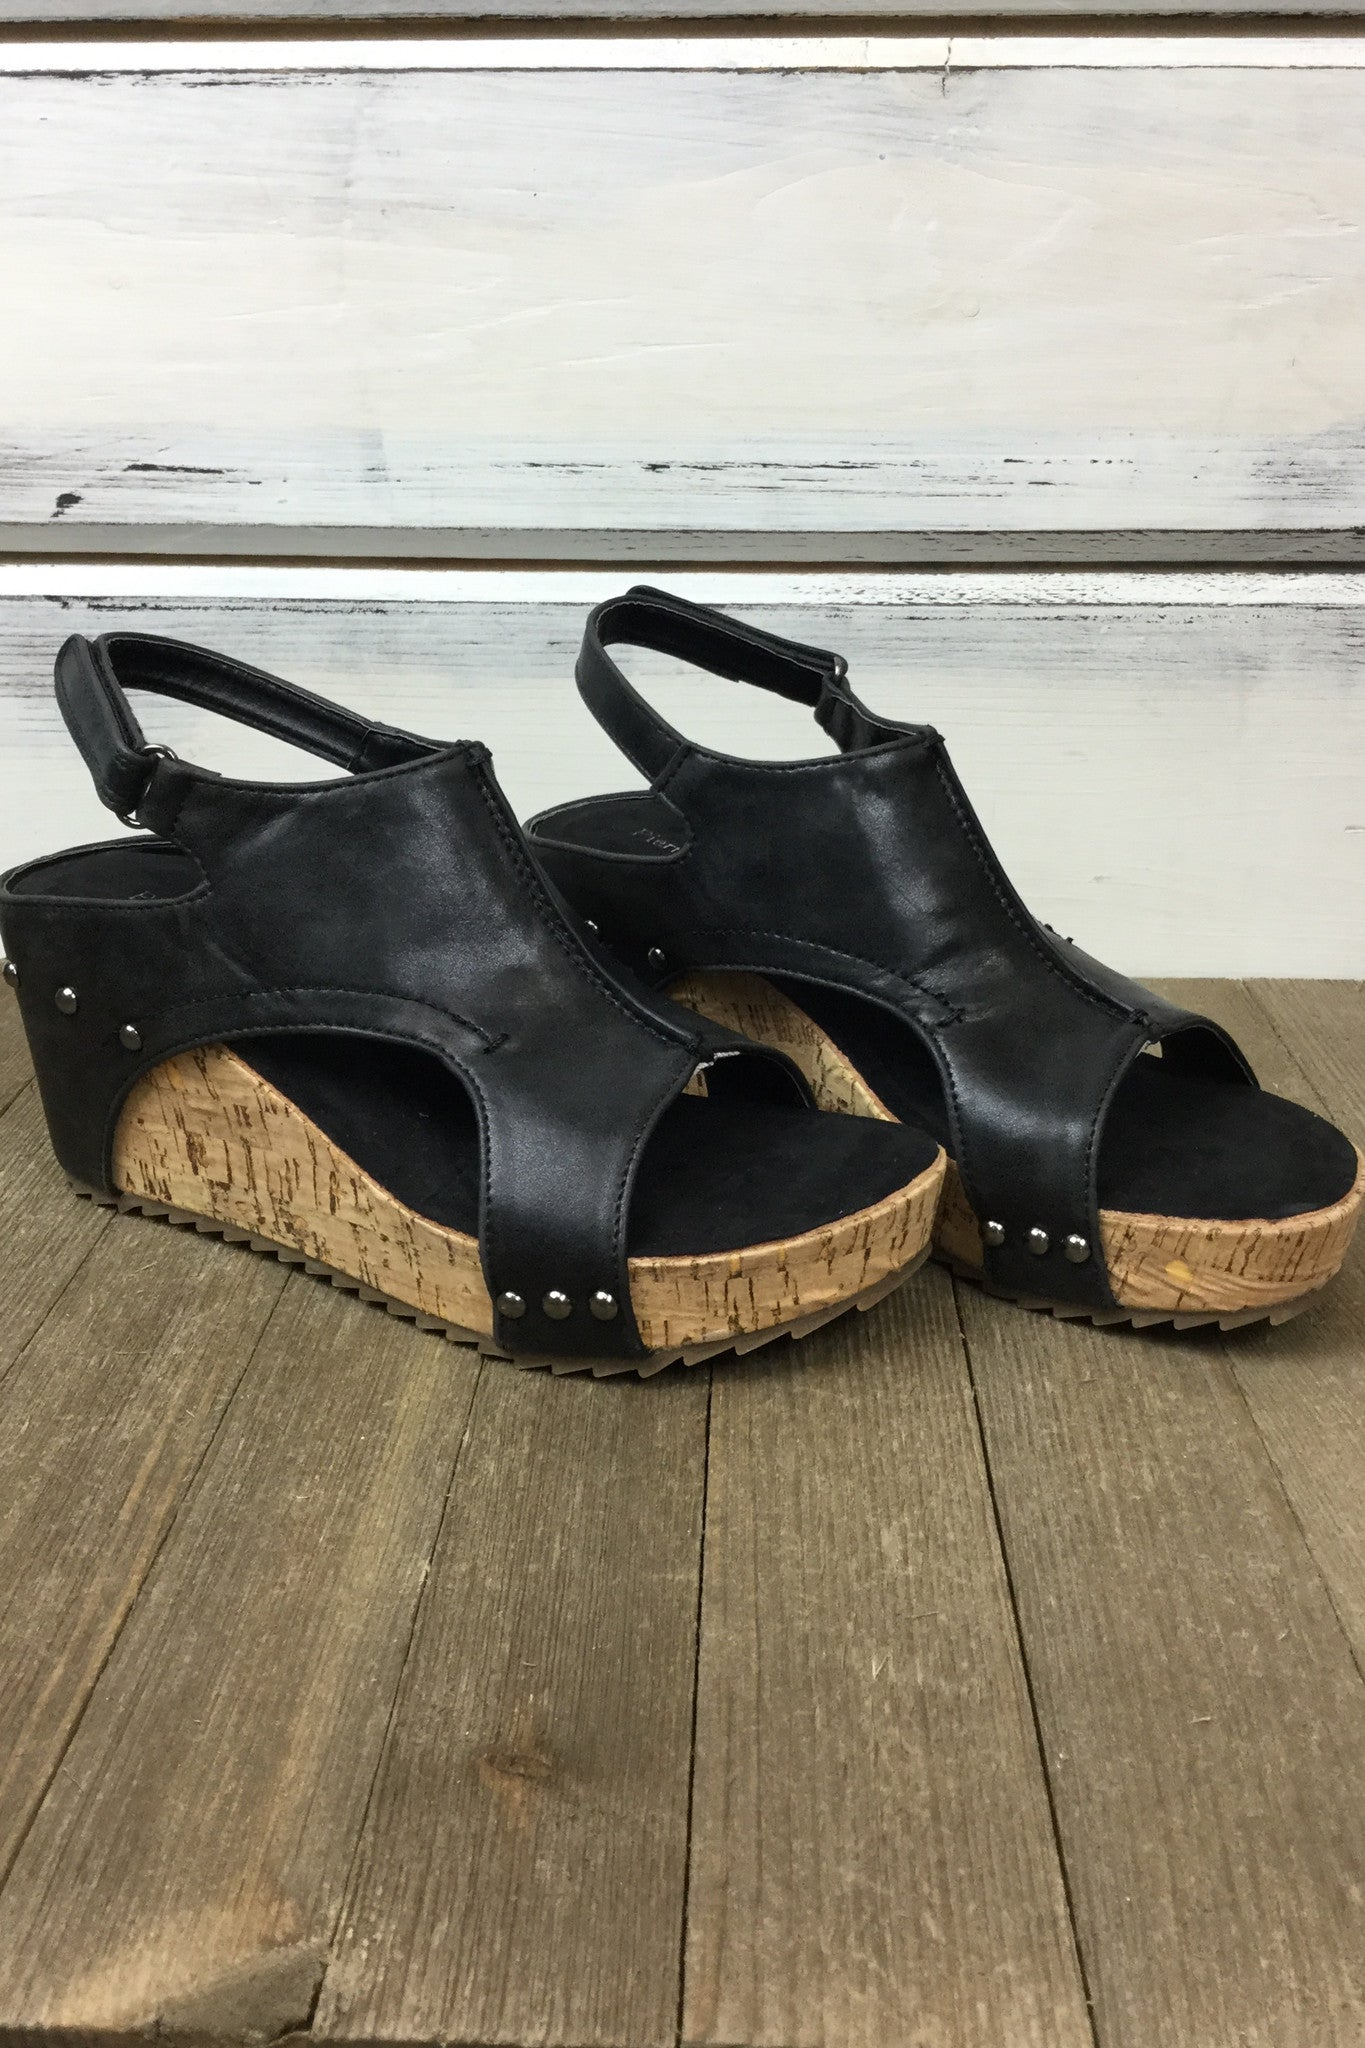 Giselle Wedge Sandal - Black